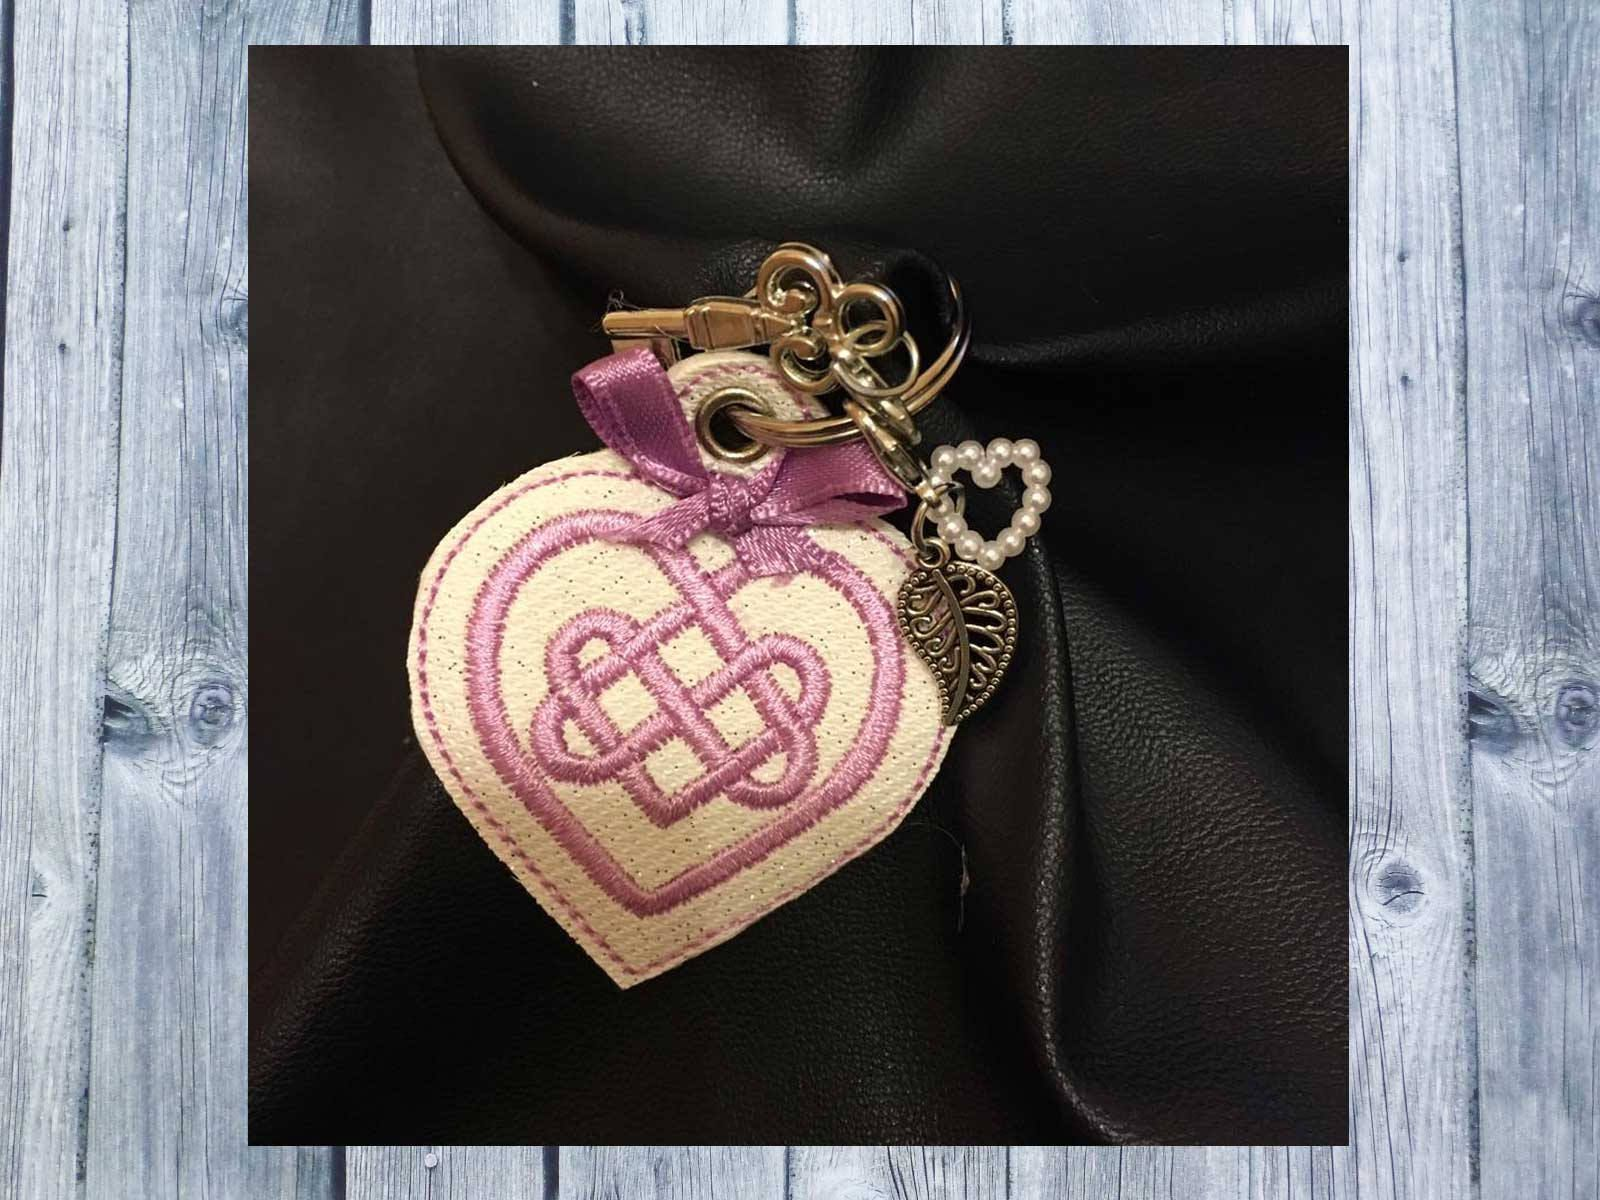 ITH embroidery file, Celtic knot, Celtic heart, key chain, 10 x 10 ...